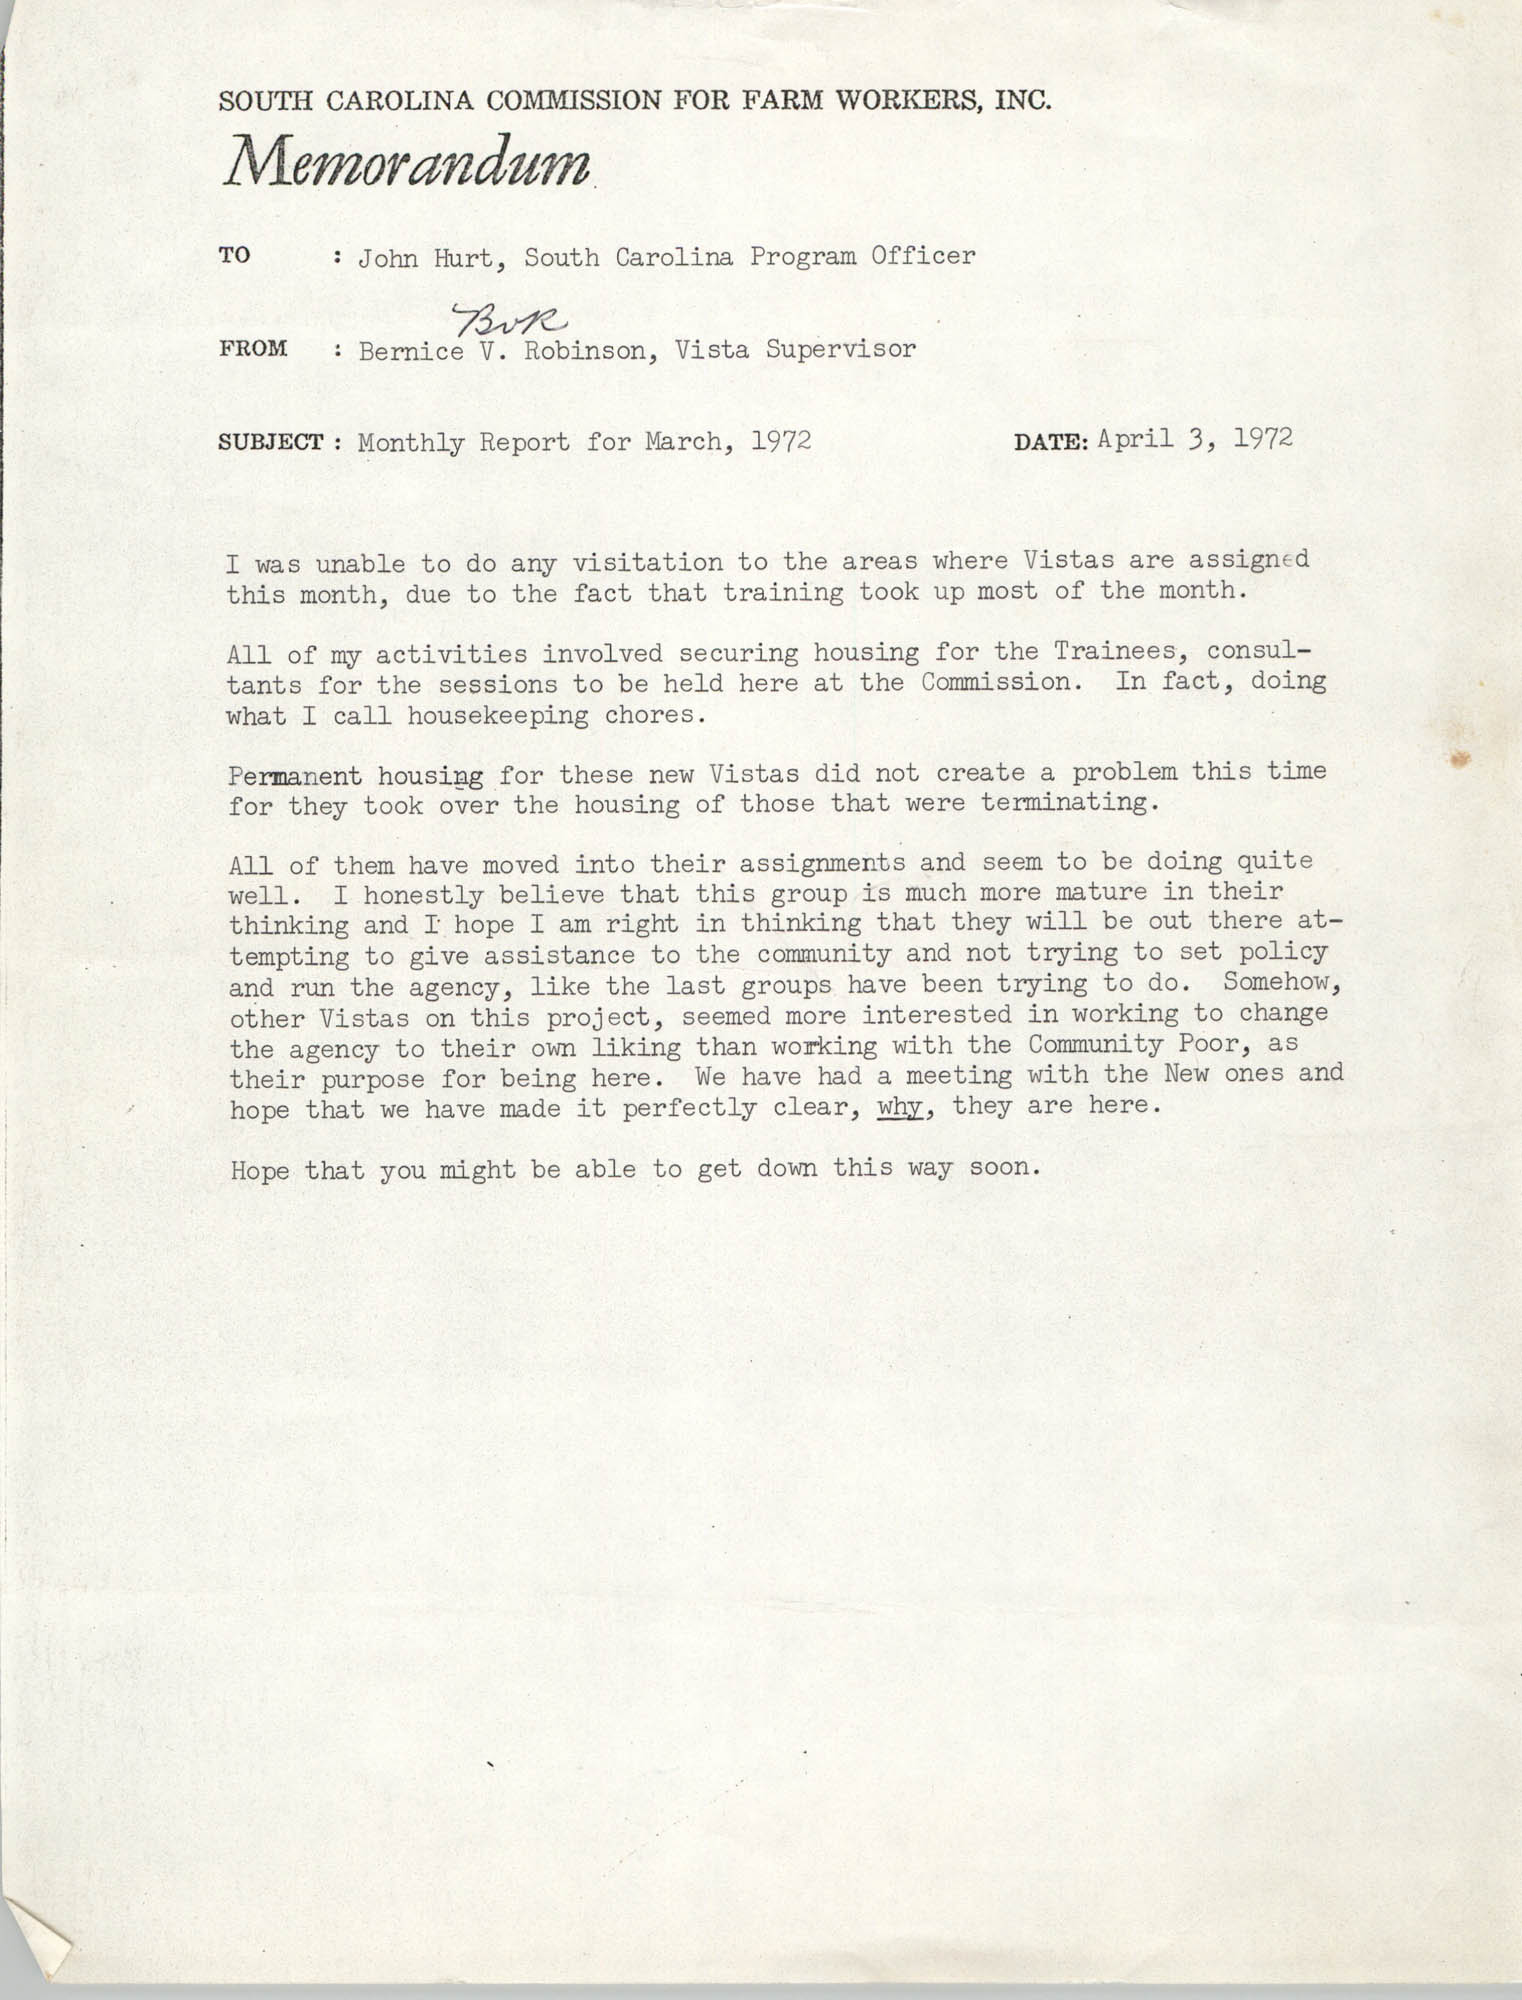 Memorandum from Bernice V. Robinson to John Hurt, March 1972